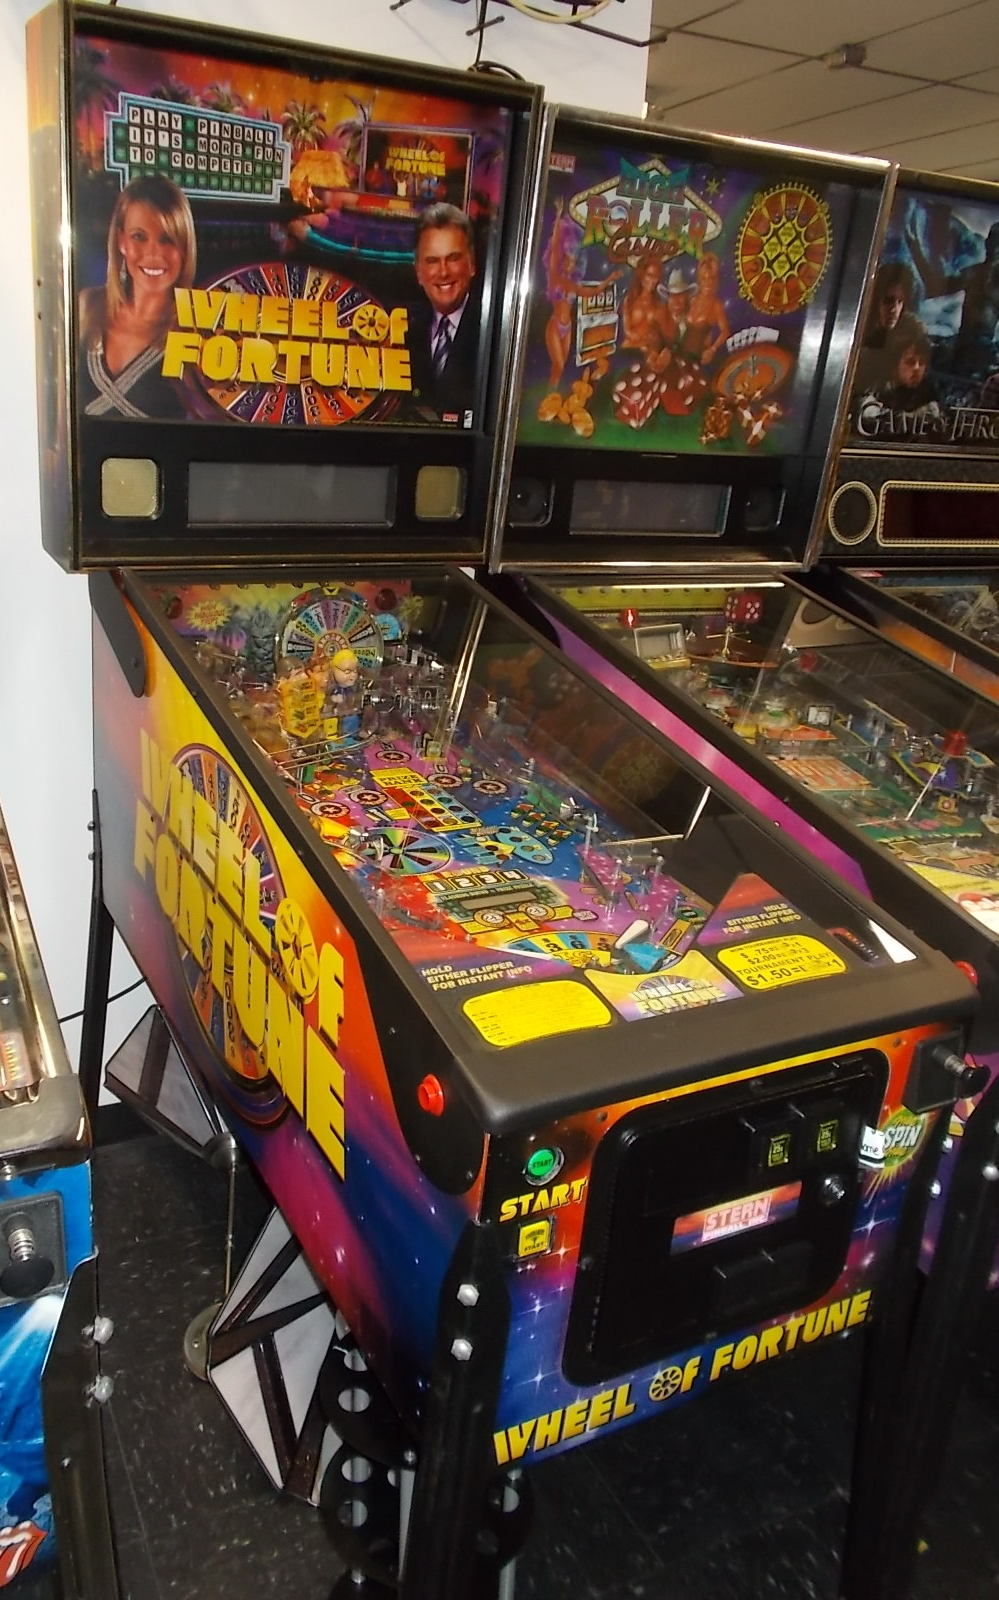 Free Shipping Sites >> WHEEL OF FORTUNE Pinball Machine Game by Stern - VANNA ...